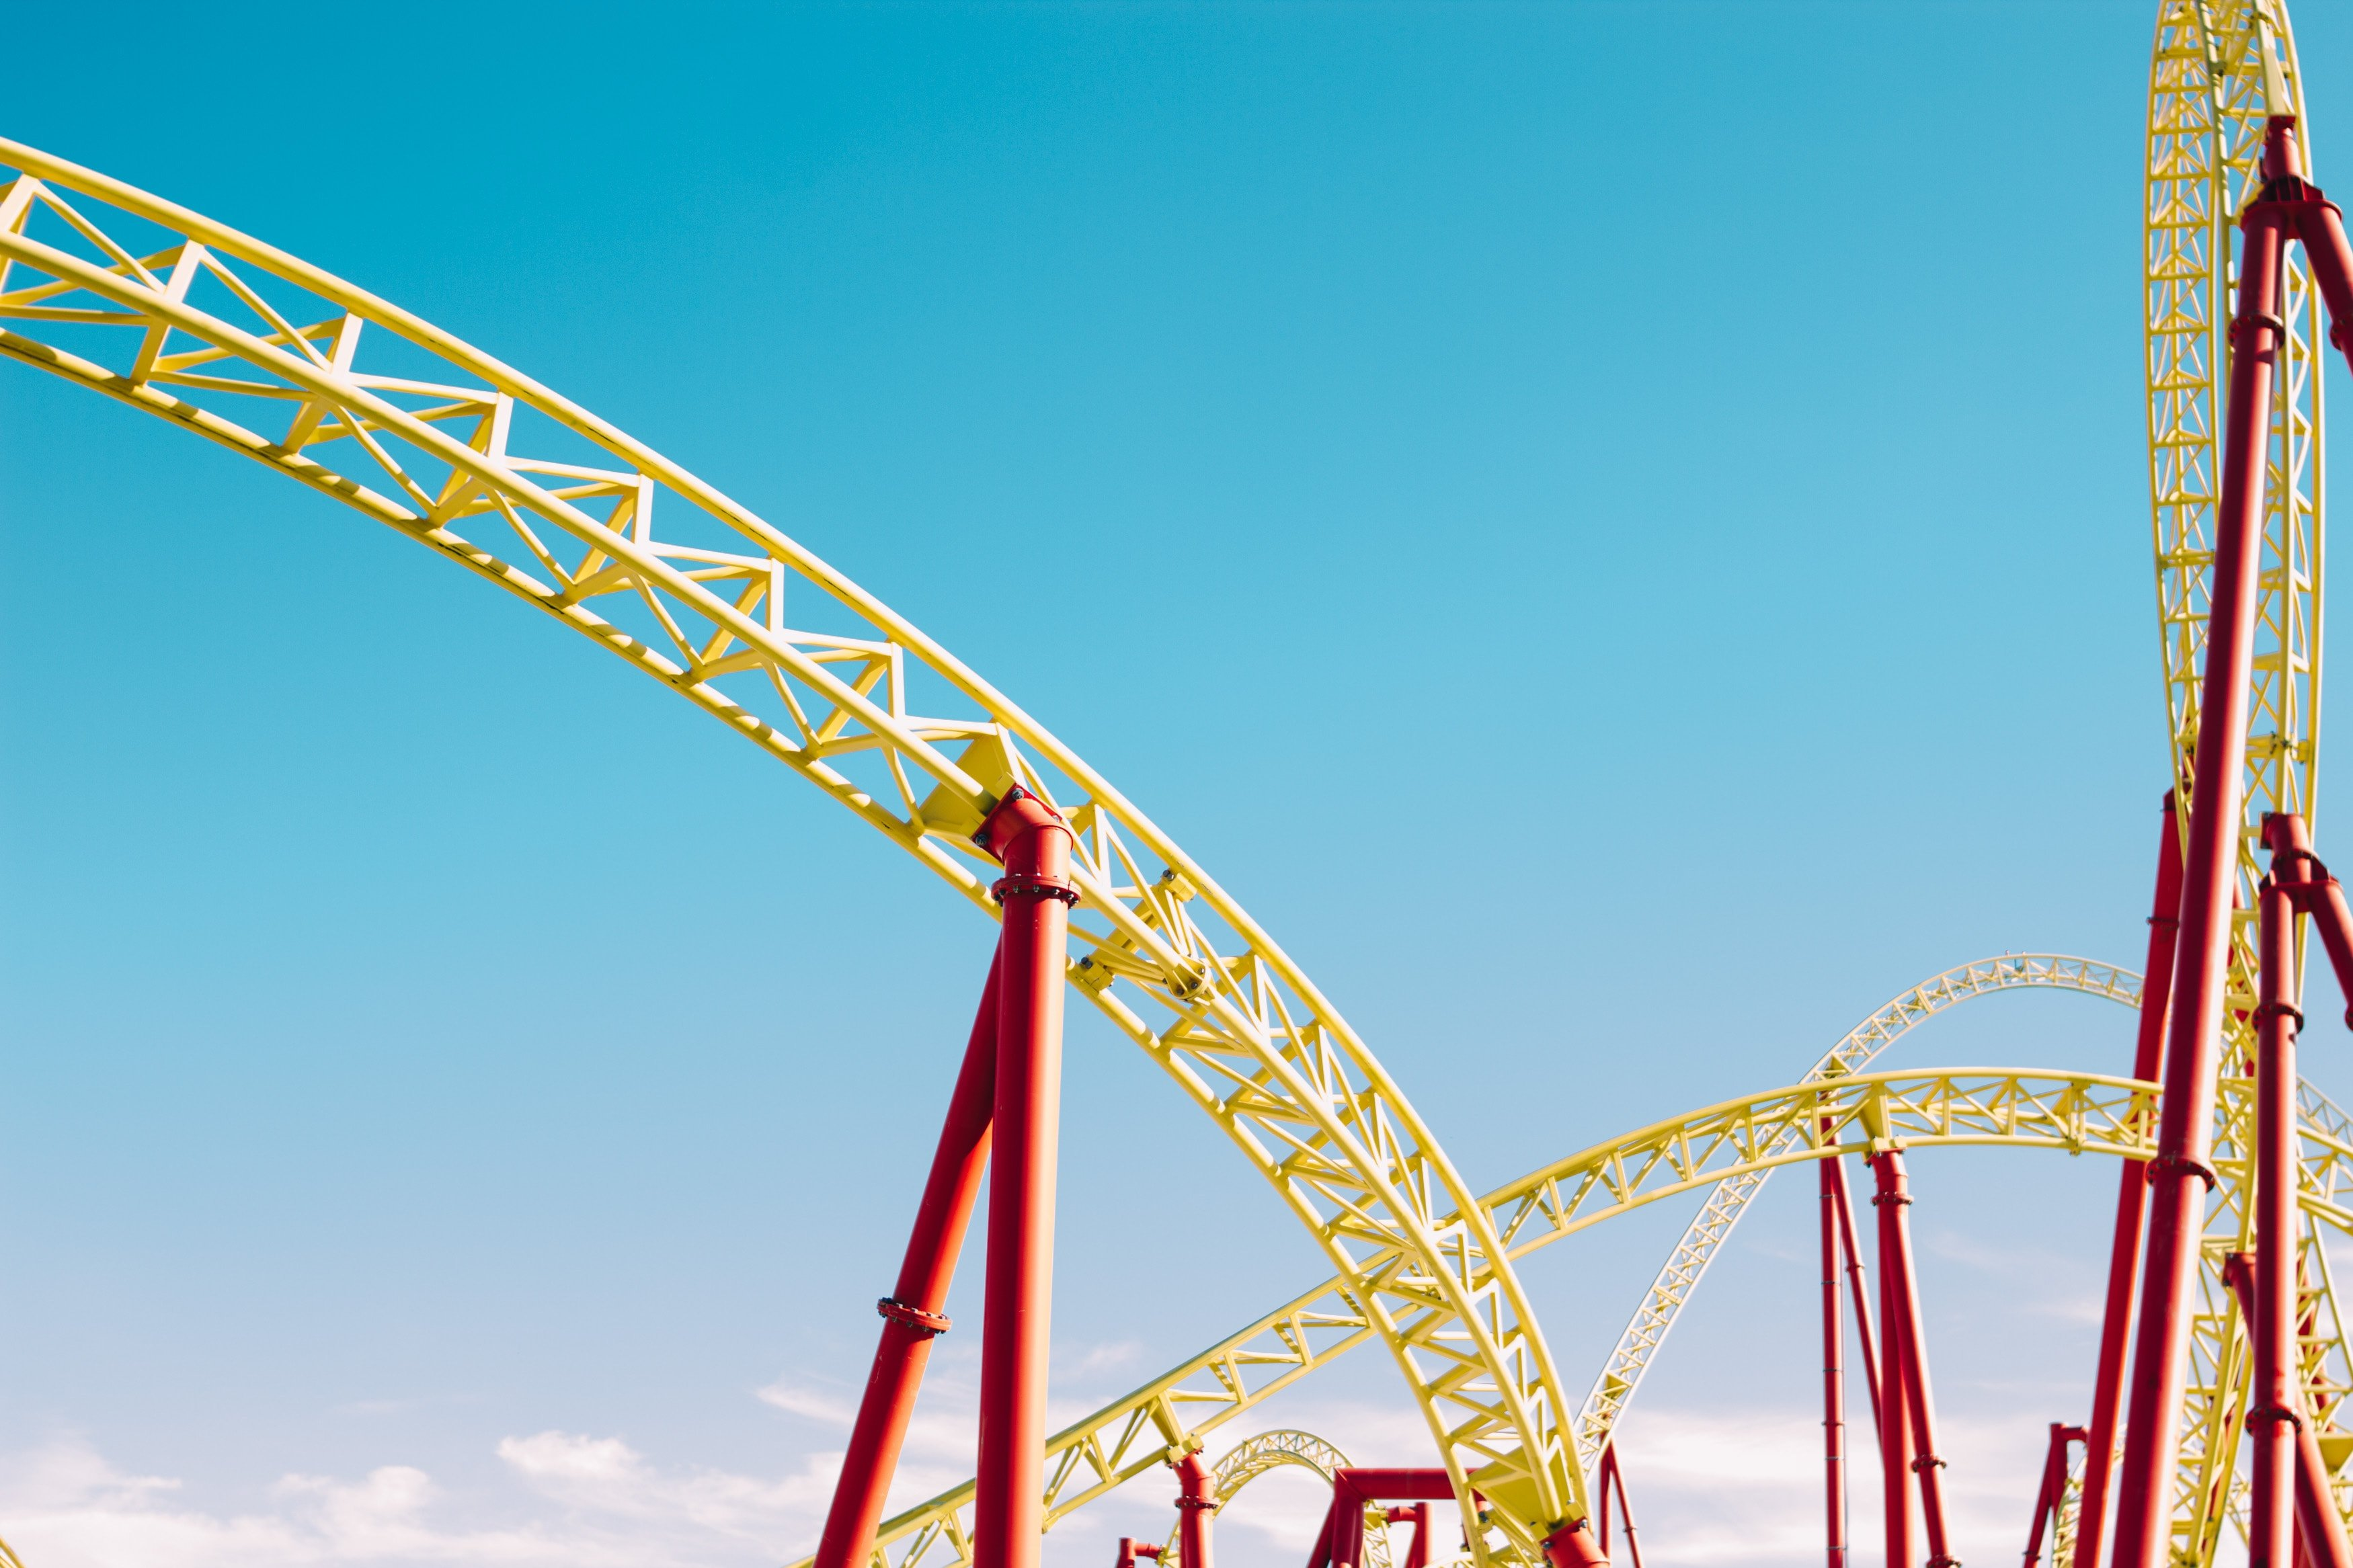 A rollercoaster at an amusement park. | Source: Unsplash